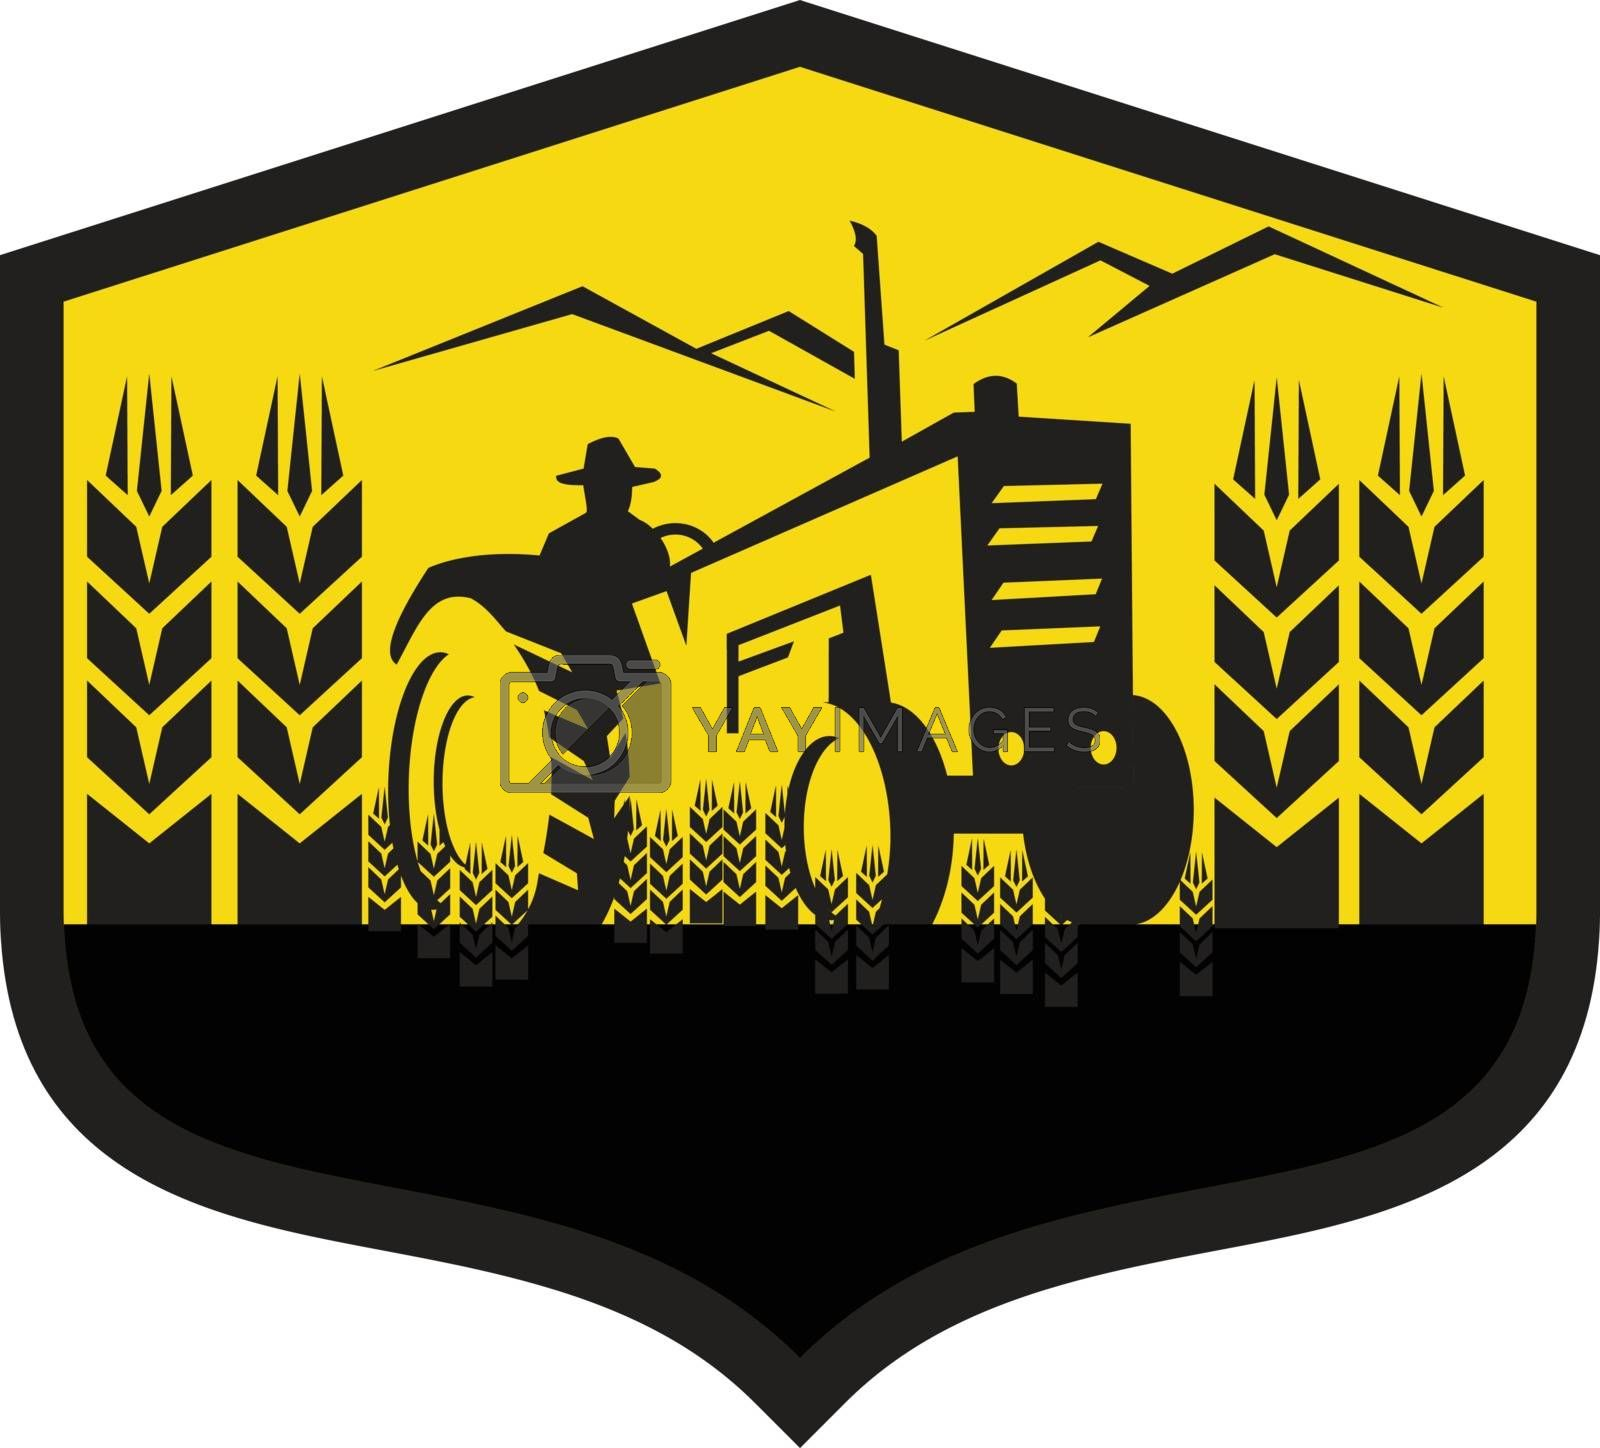 Illustration of a farmer driving tractor harvesting wheat in farm viewed from front set inside shield crest done in retro style.